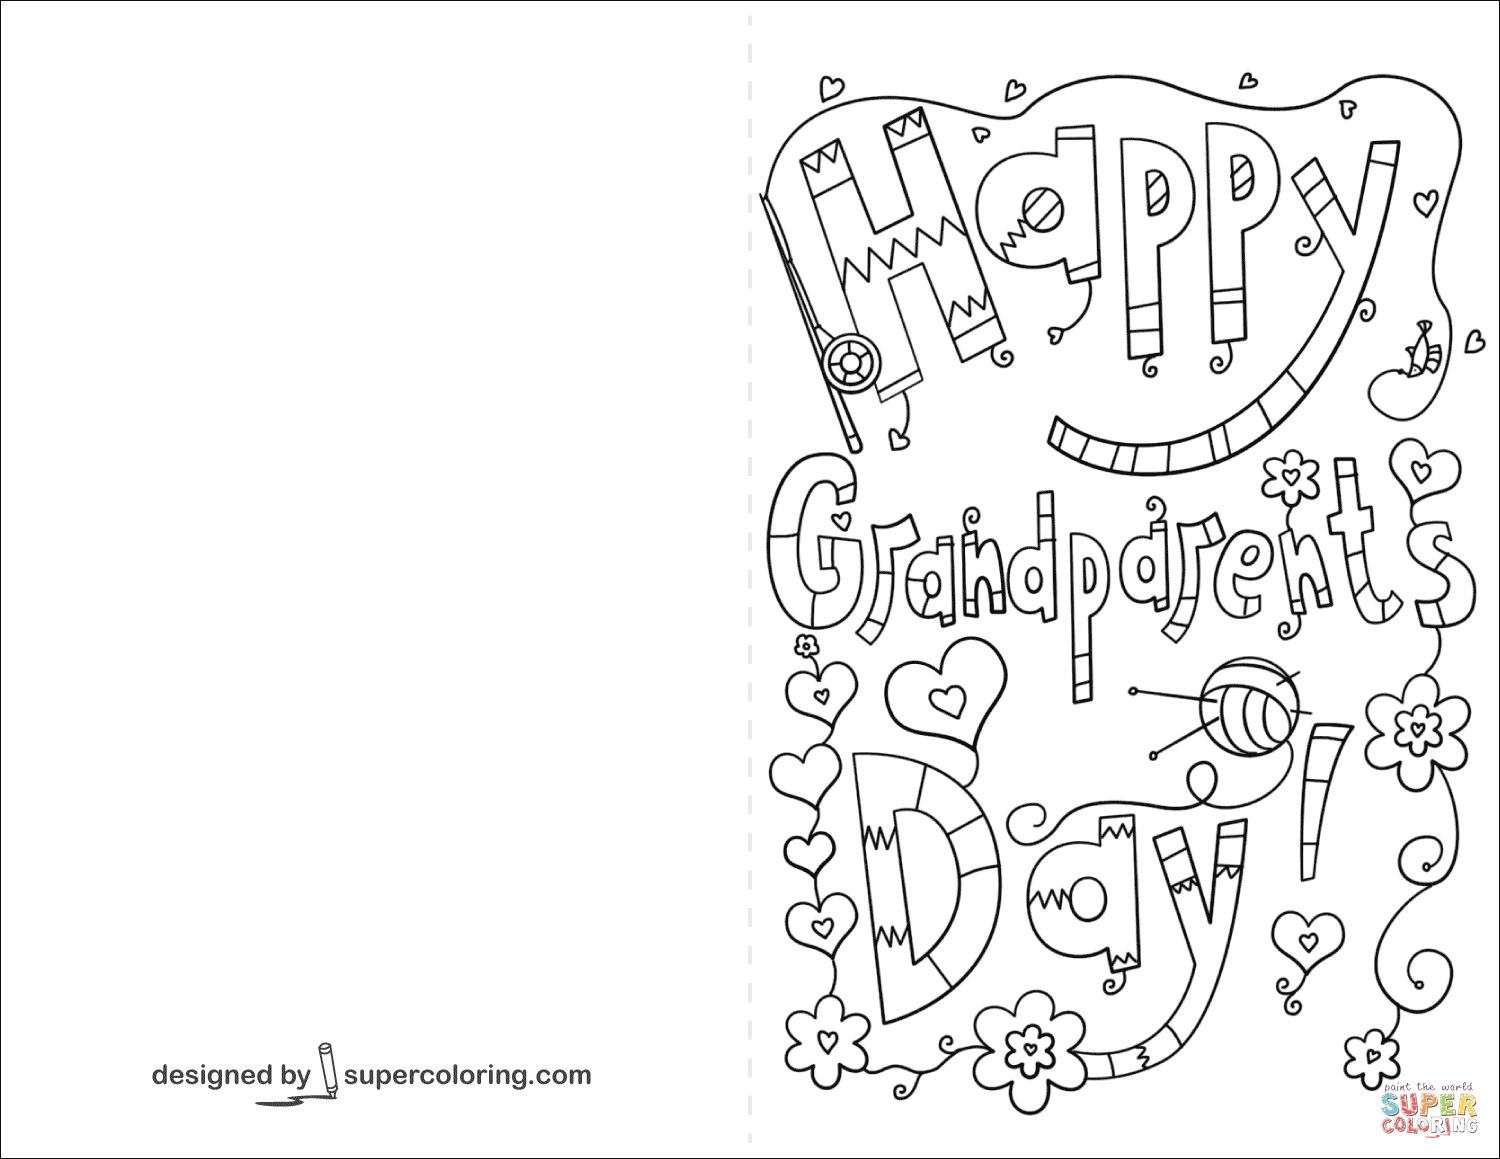 Coloring Pages ~ Fathers Day Colorings For Grandpa Grandfather Uncle - Grandparents Certificate Free Printable